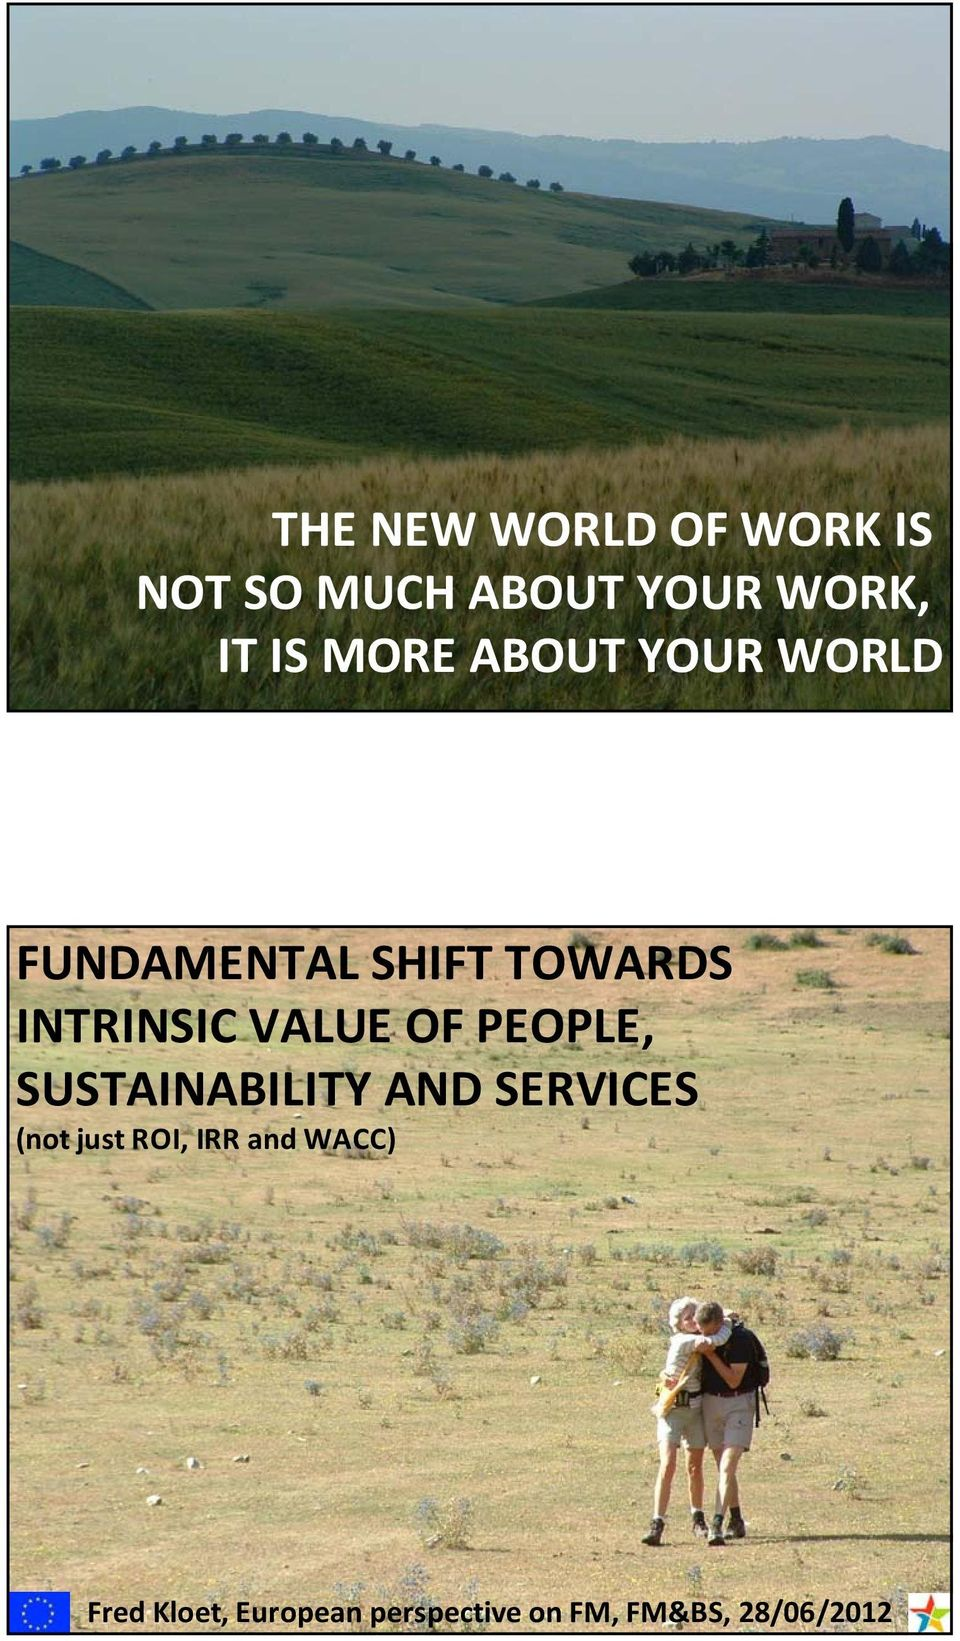 VALUE OF PEOPLE, SUSTAINABILITY AND SERVICES (not just ROI,